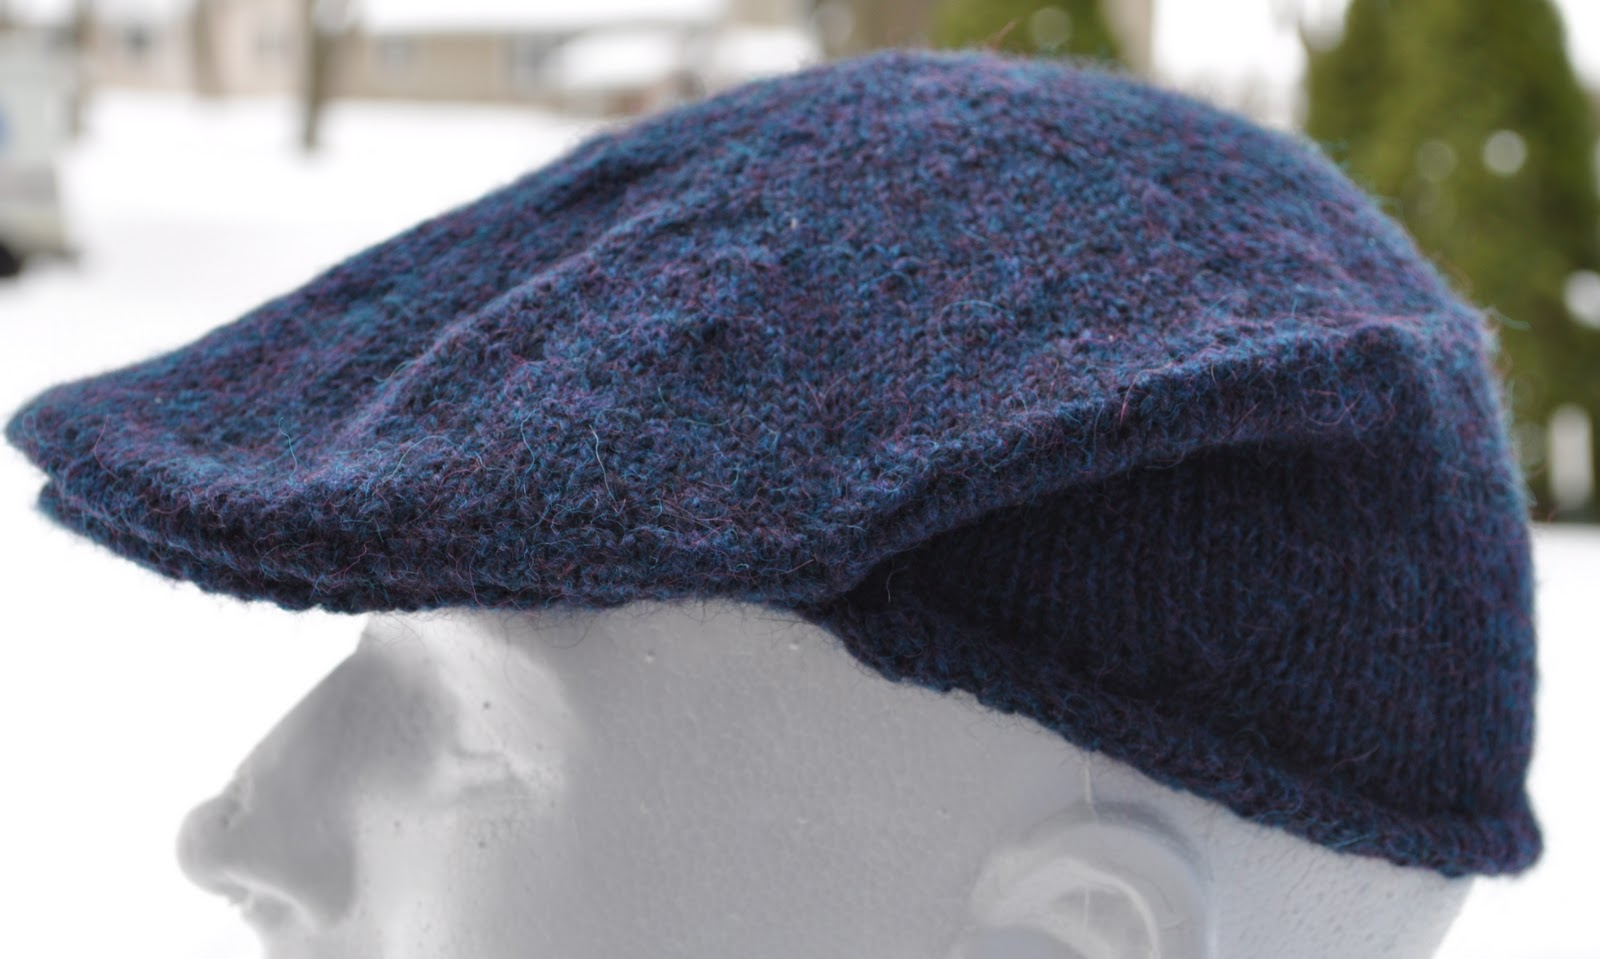 how to close in a hat taht you knitted